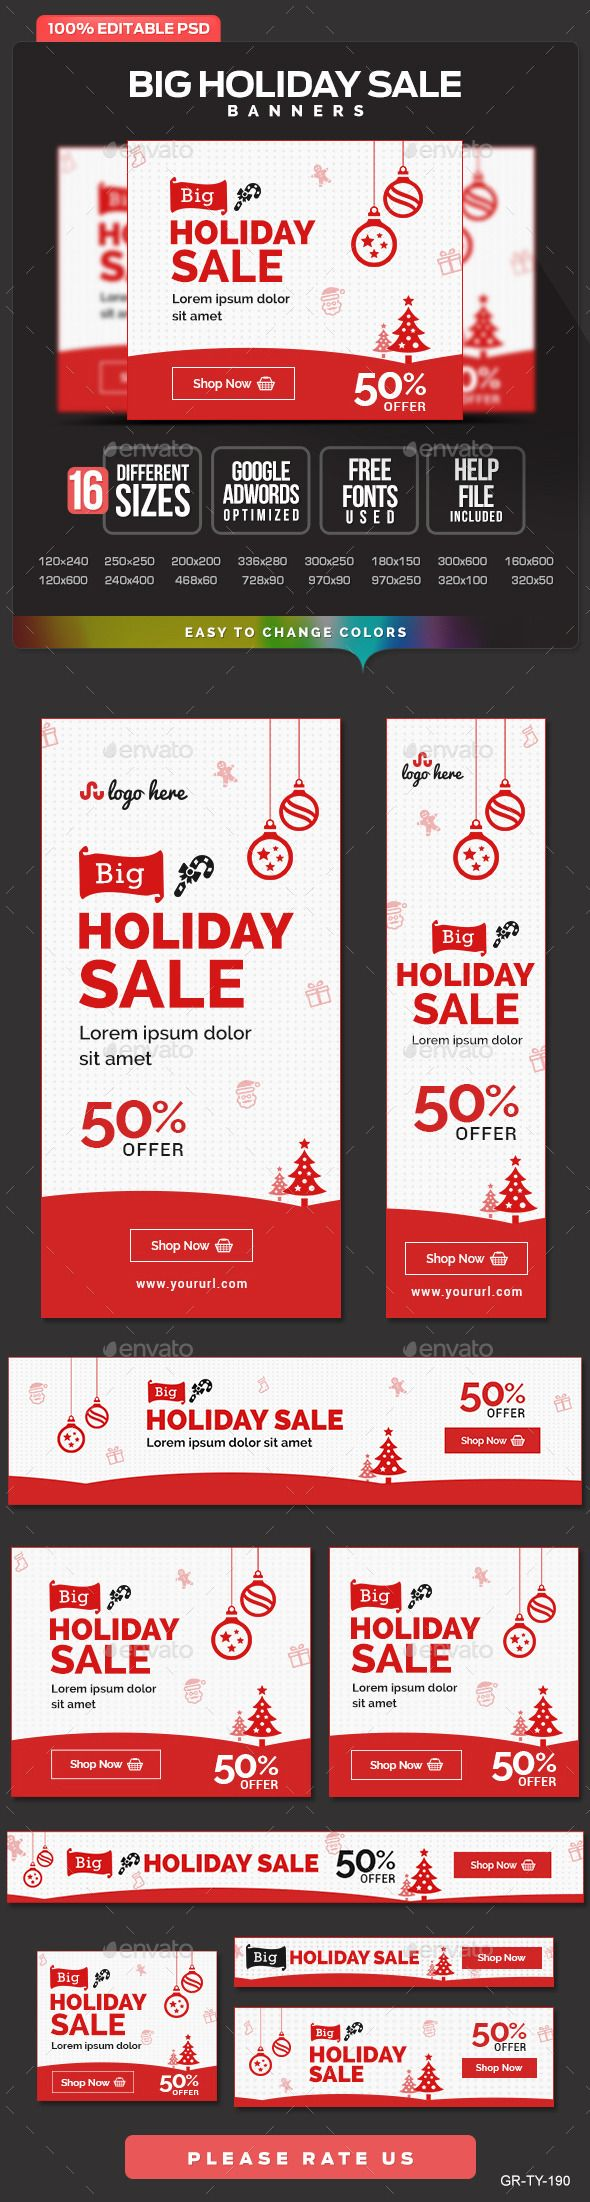 Holiday Sale Banner Design Set Template PSD   Buy and Download: http://graphicriver.net/item/holiday-sale-banner-design-set/9810206?ref=ksioks